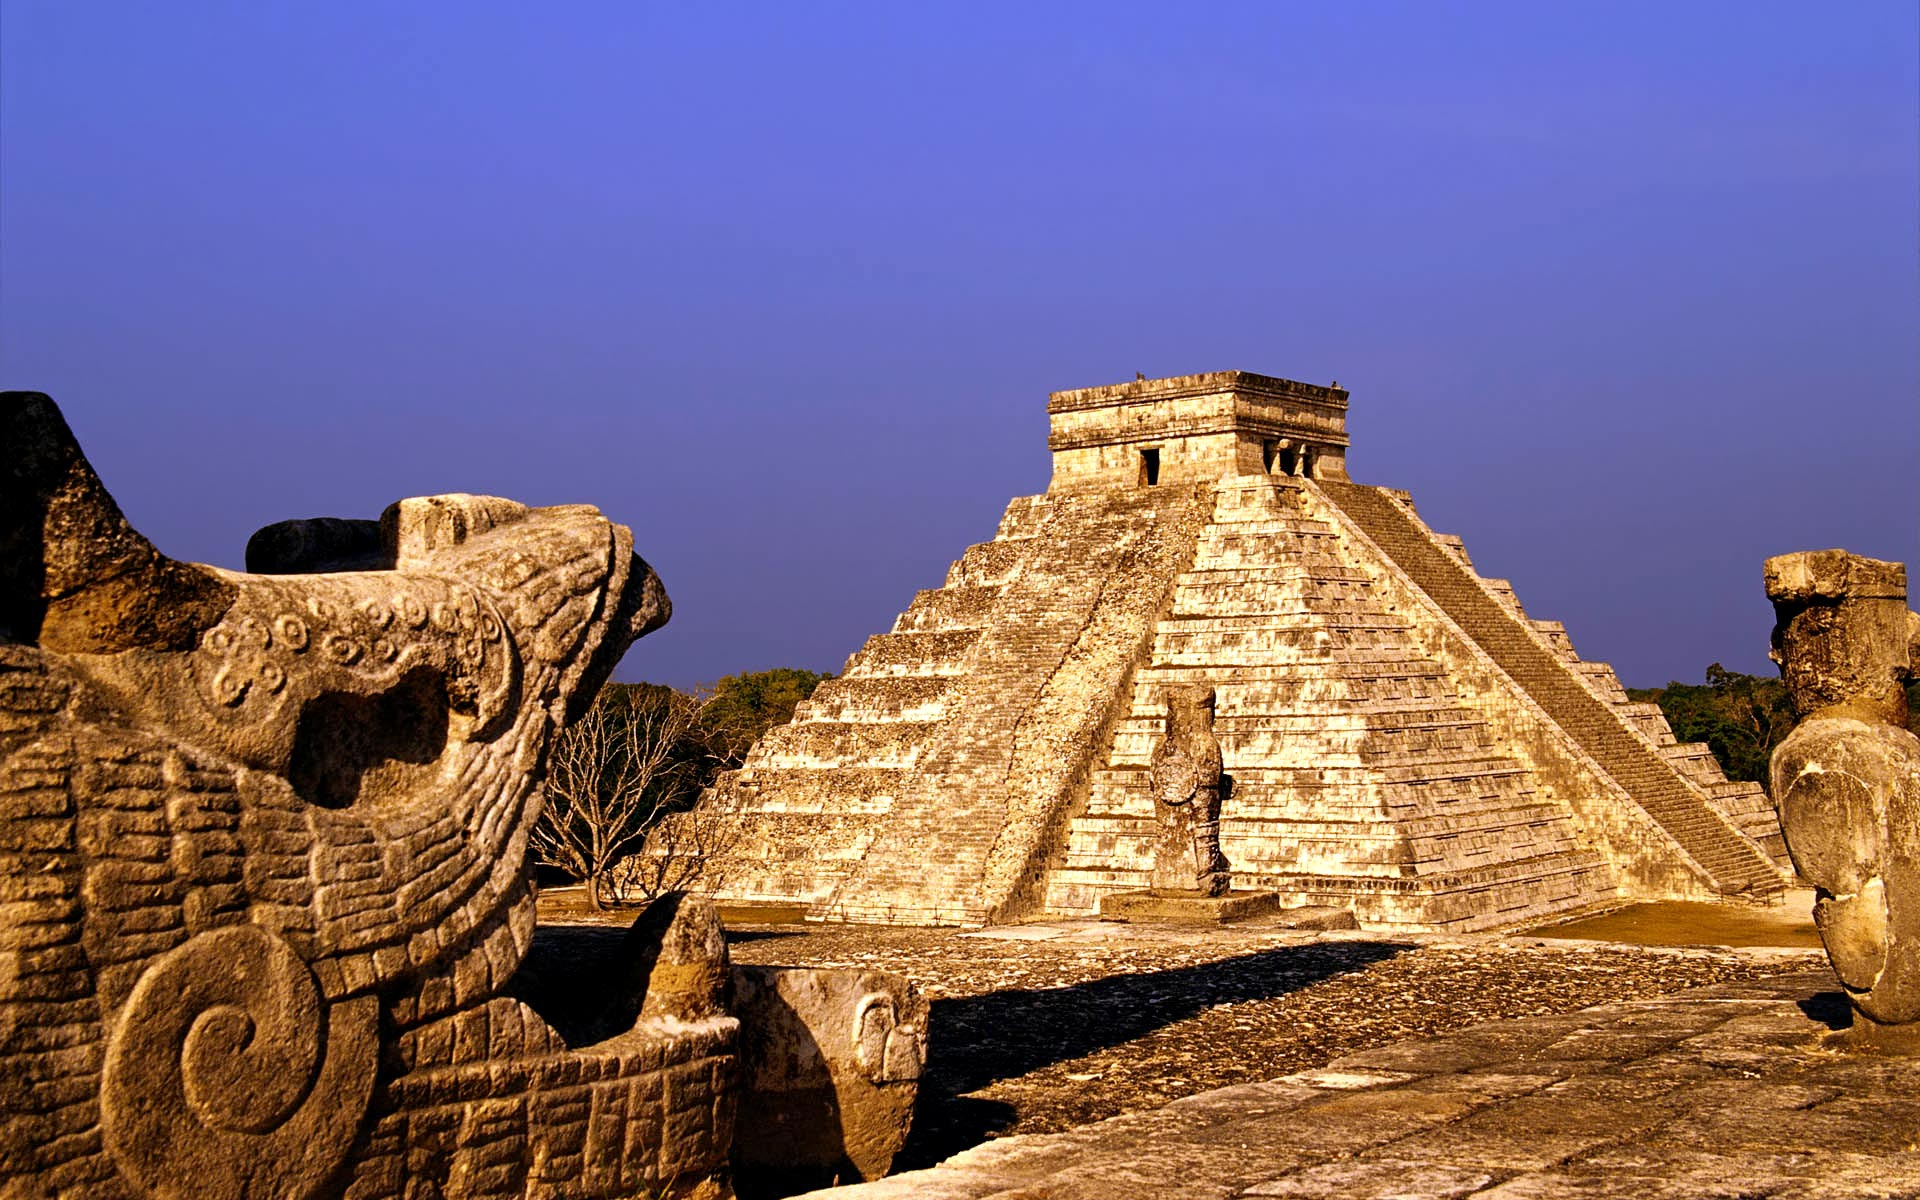 Mexico pyramids backgrounds hd Wallpaper and make this wallpaper for 1920x1200